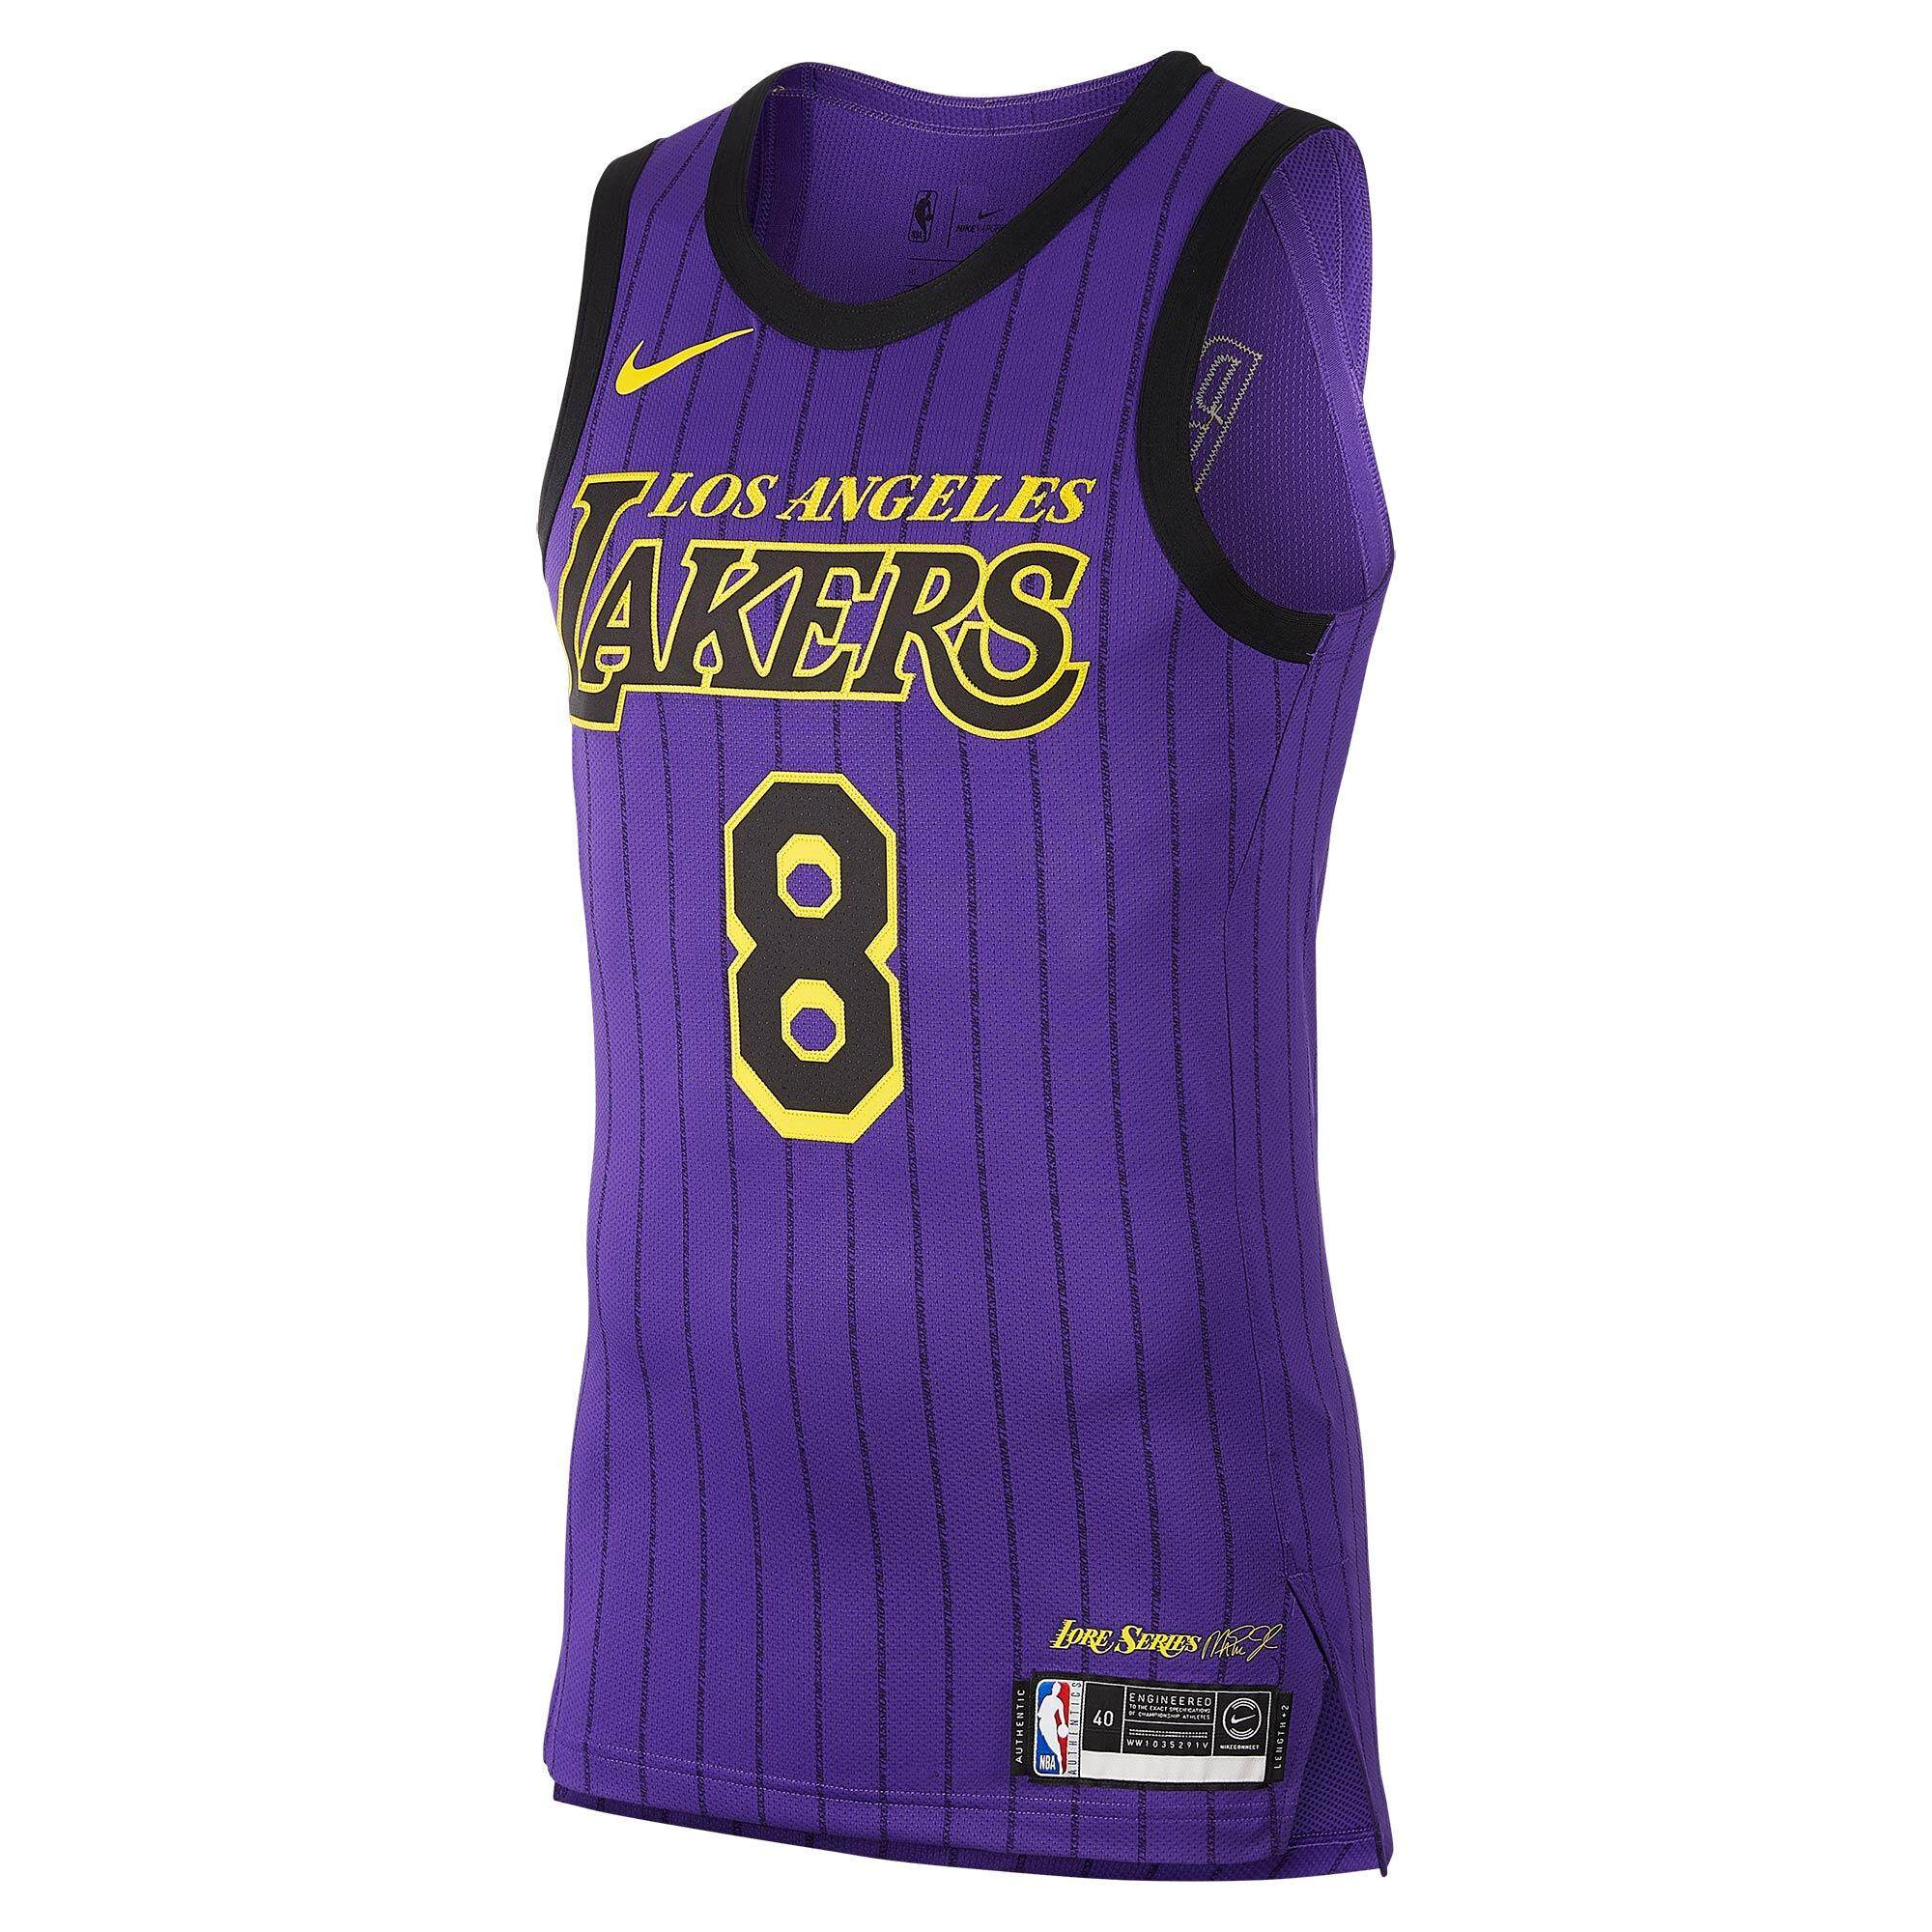 NI - KEOfficial LosA - ngeles Lakers CE AU NBA CONNECTED ผู้ชาย JERSEY AV3696